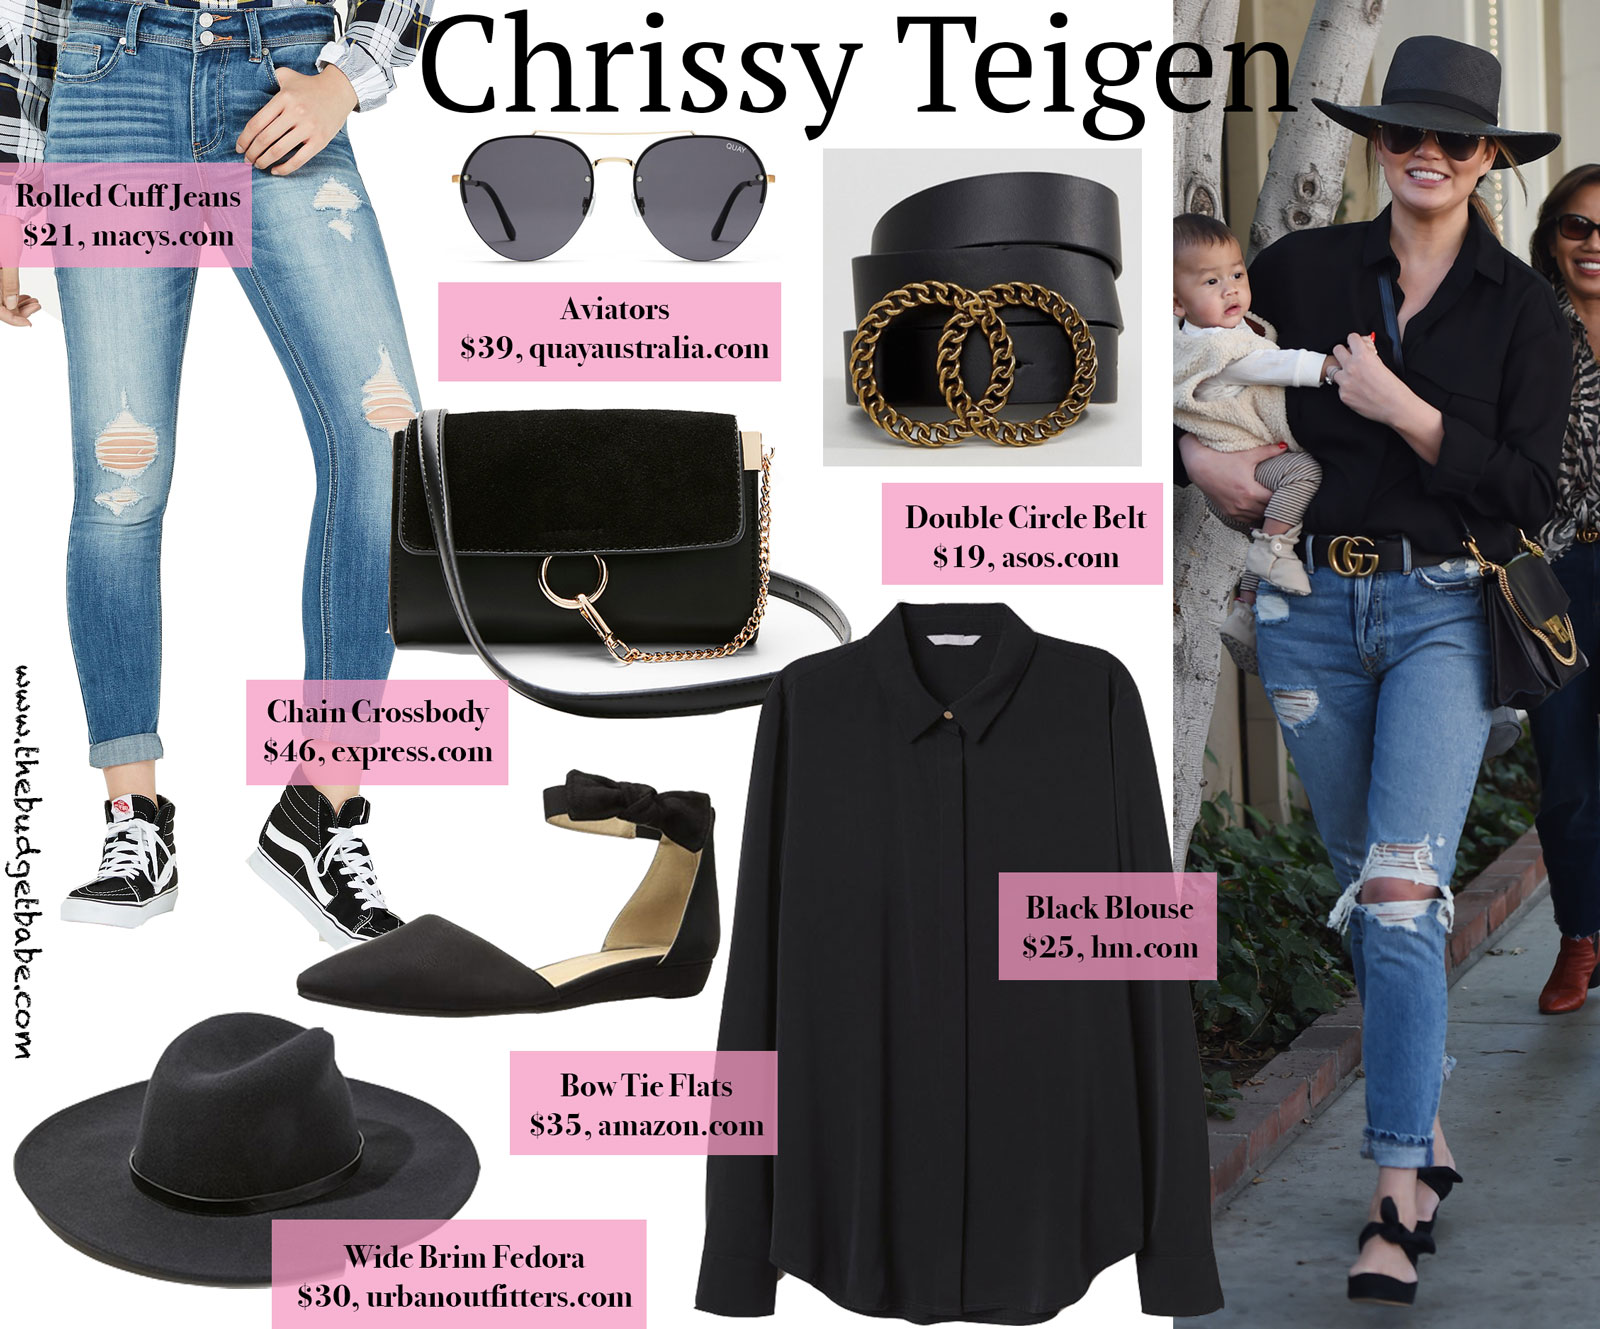 Chrissy Teigen Black Blouse Gucci Belt Look for Less